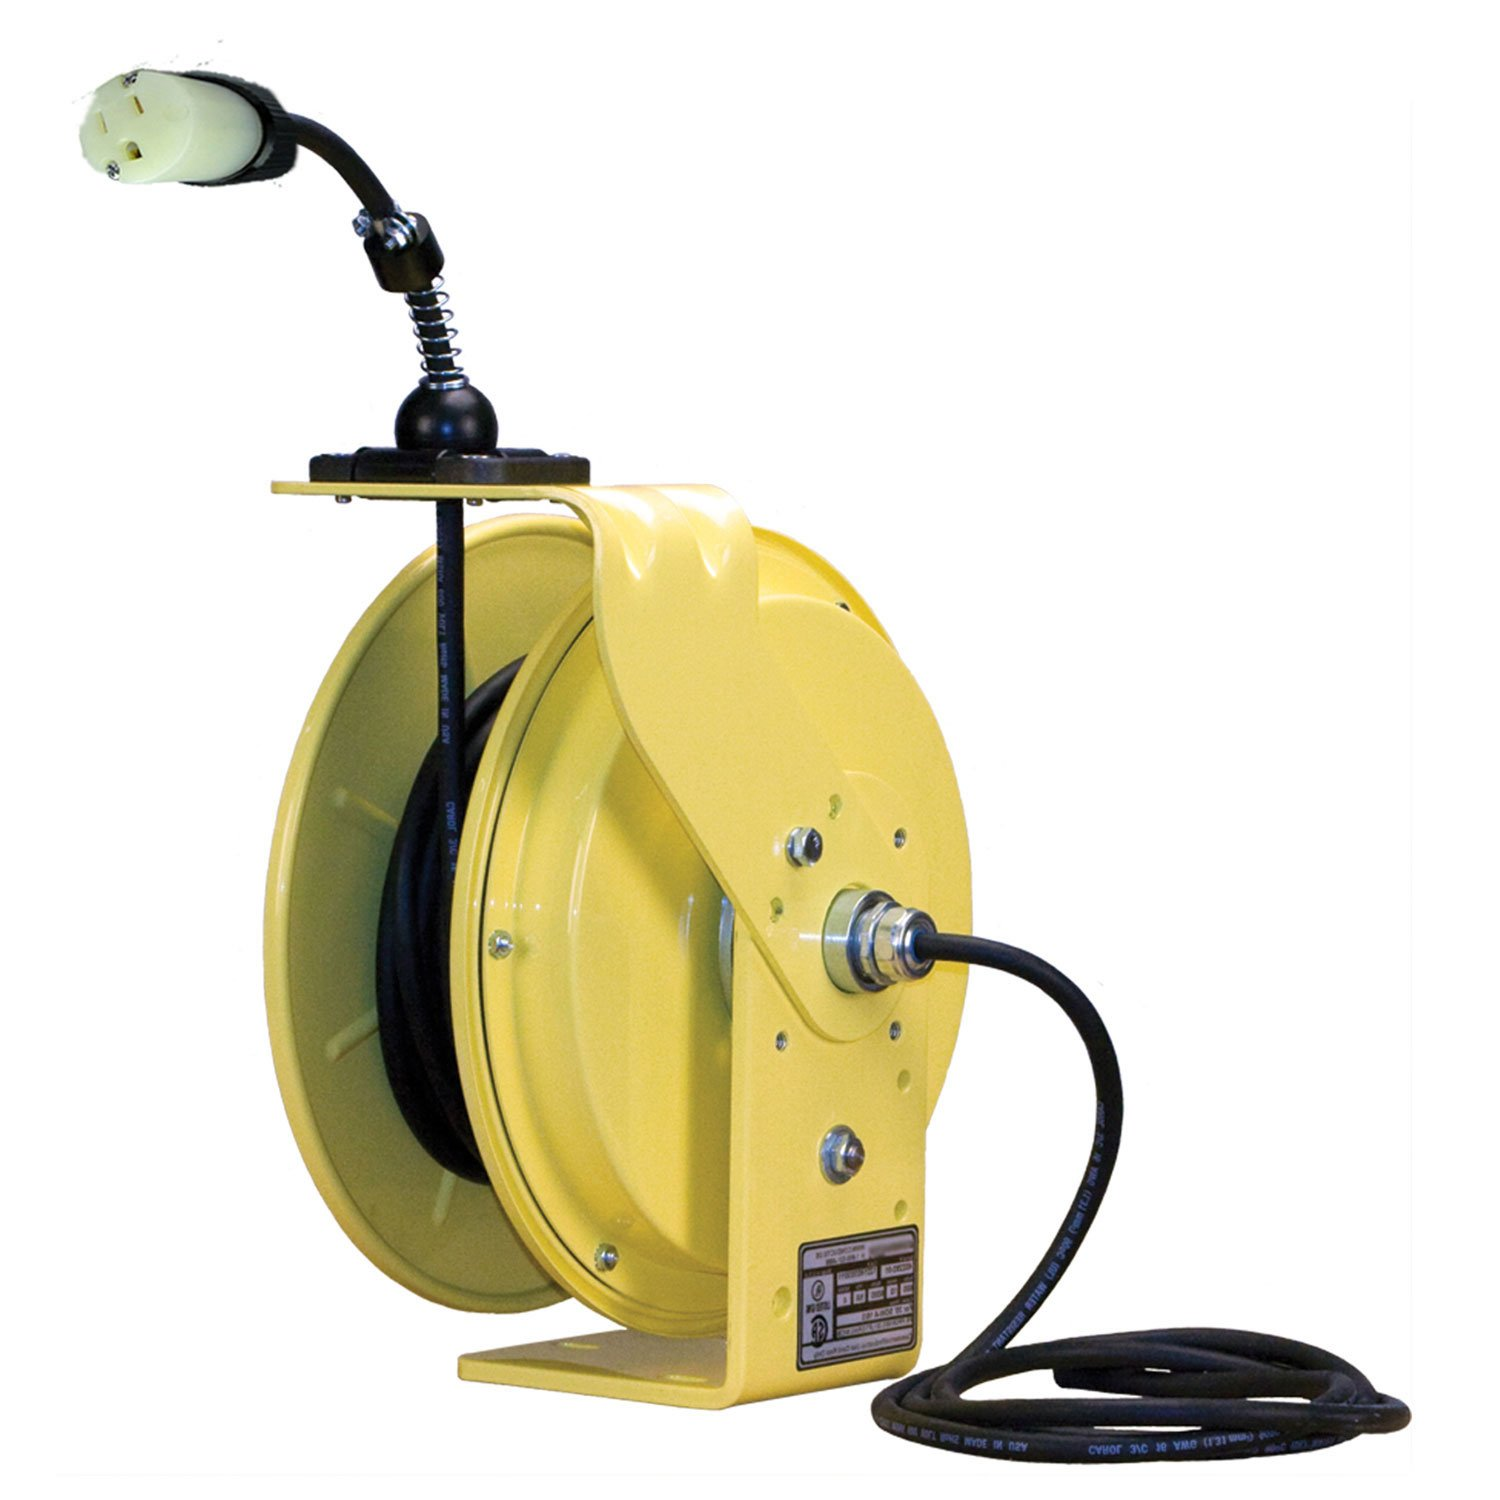 Lind Equipment LE9050143S1 Heavy Duty Cord Reel, 50ft 14/3 SJOW, 5-15P input, single 5-15R output, 15A rated, NEMA4, all-steel